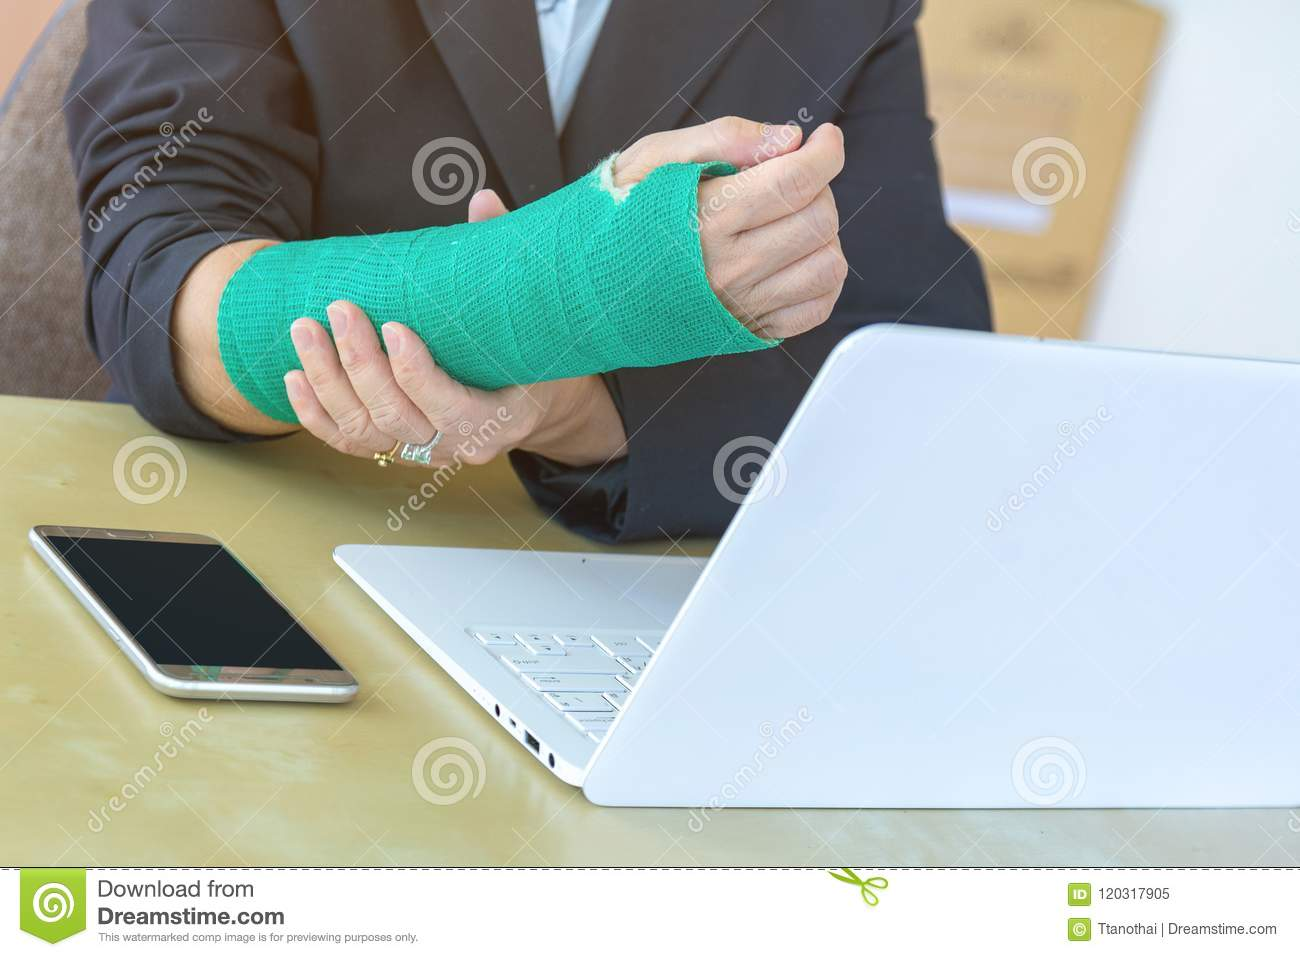 Injured Woman With Broken Hand Sitting And Holding Green